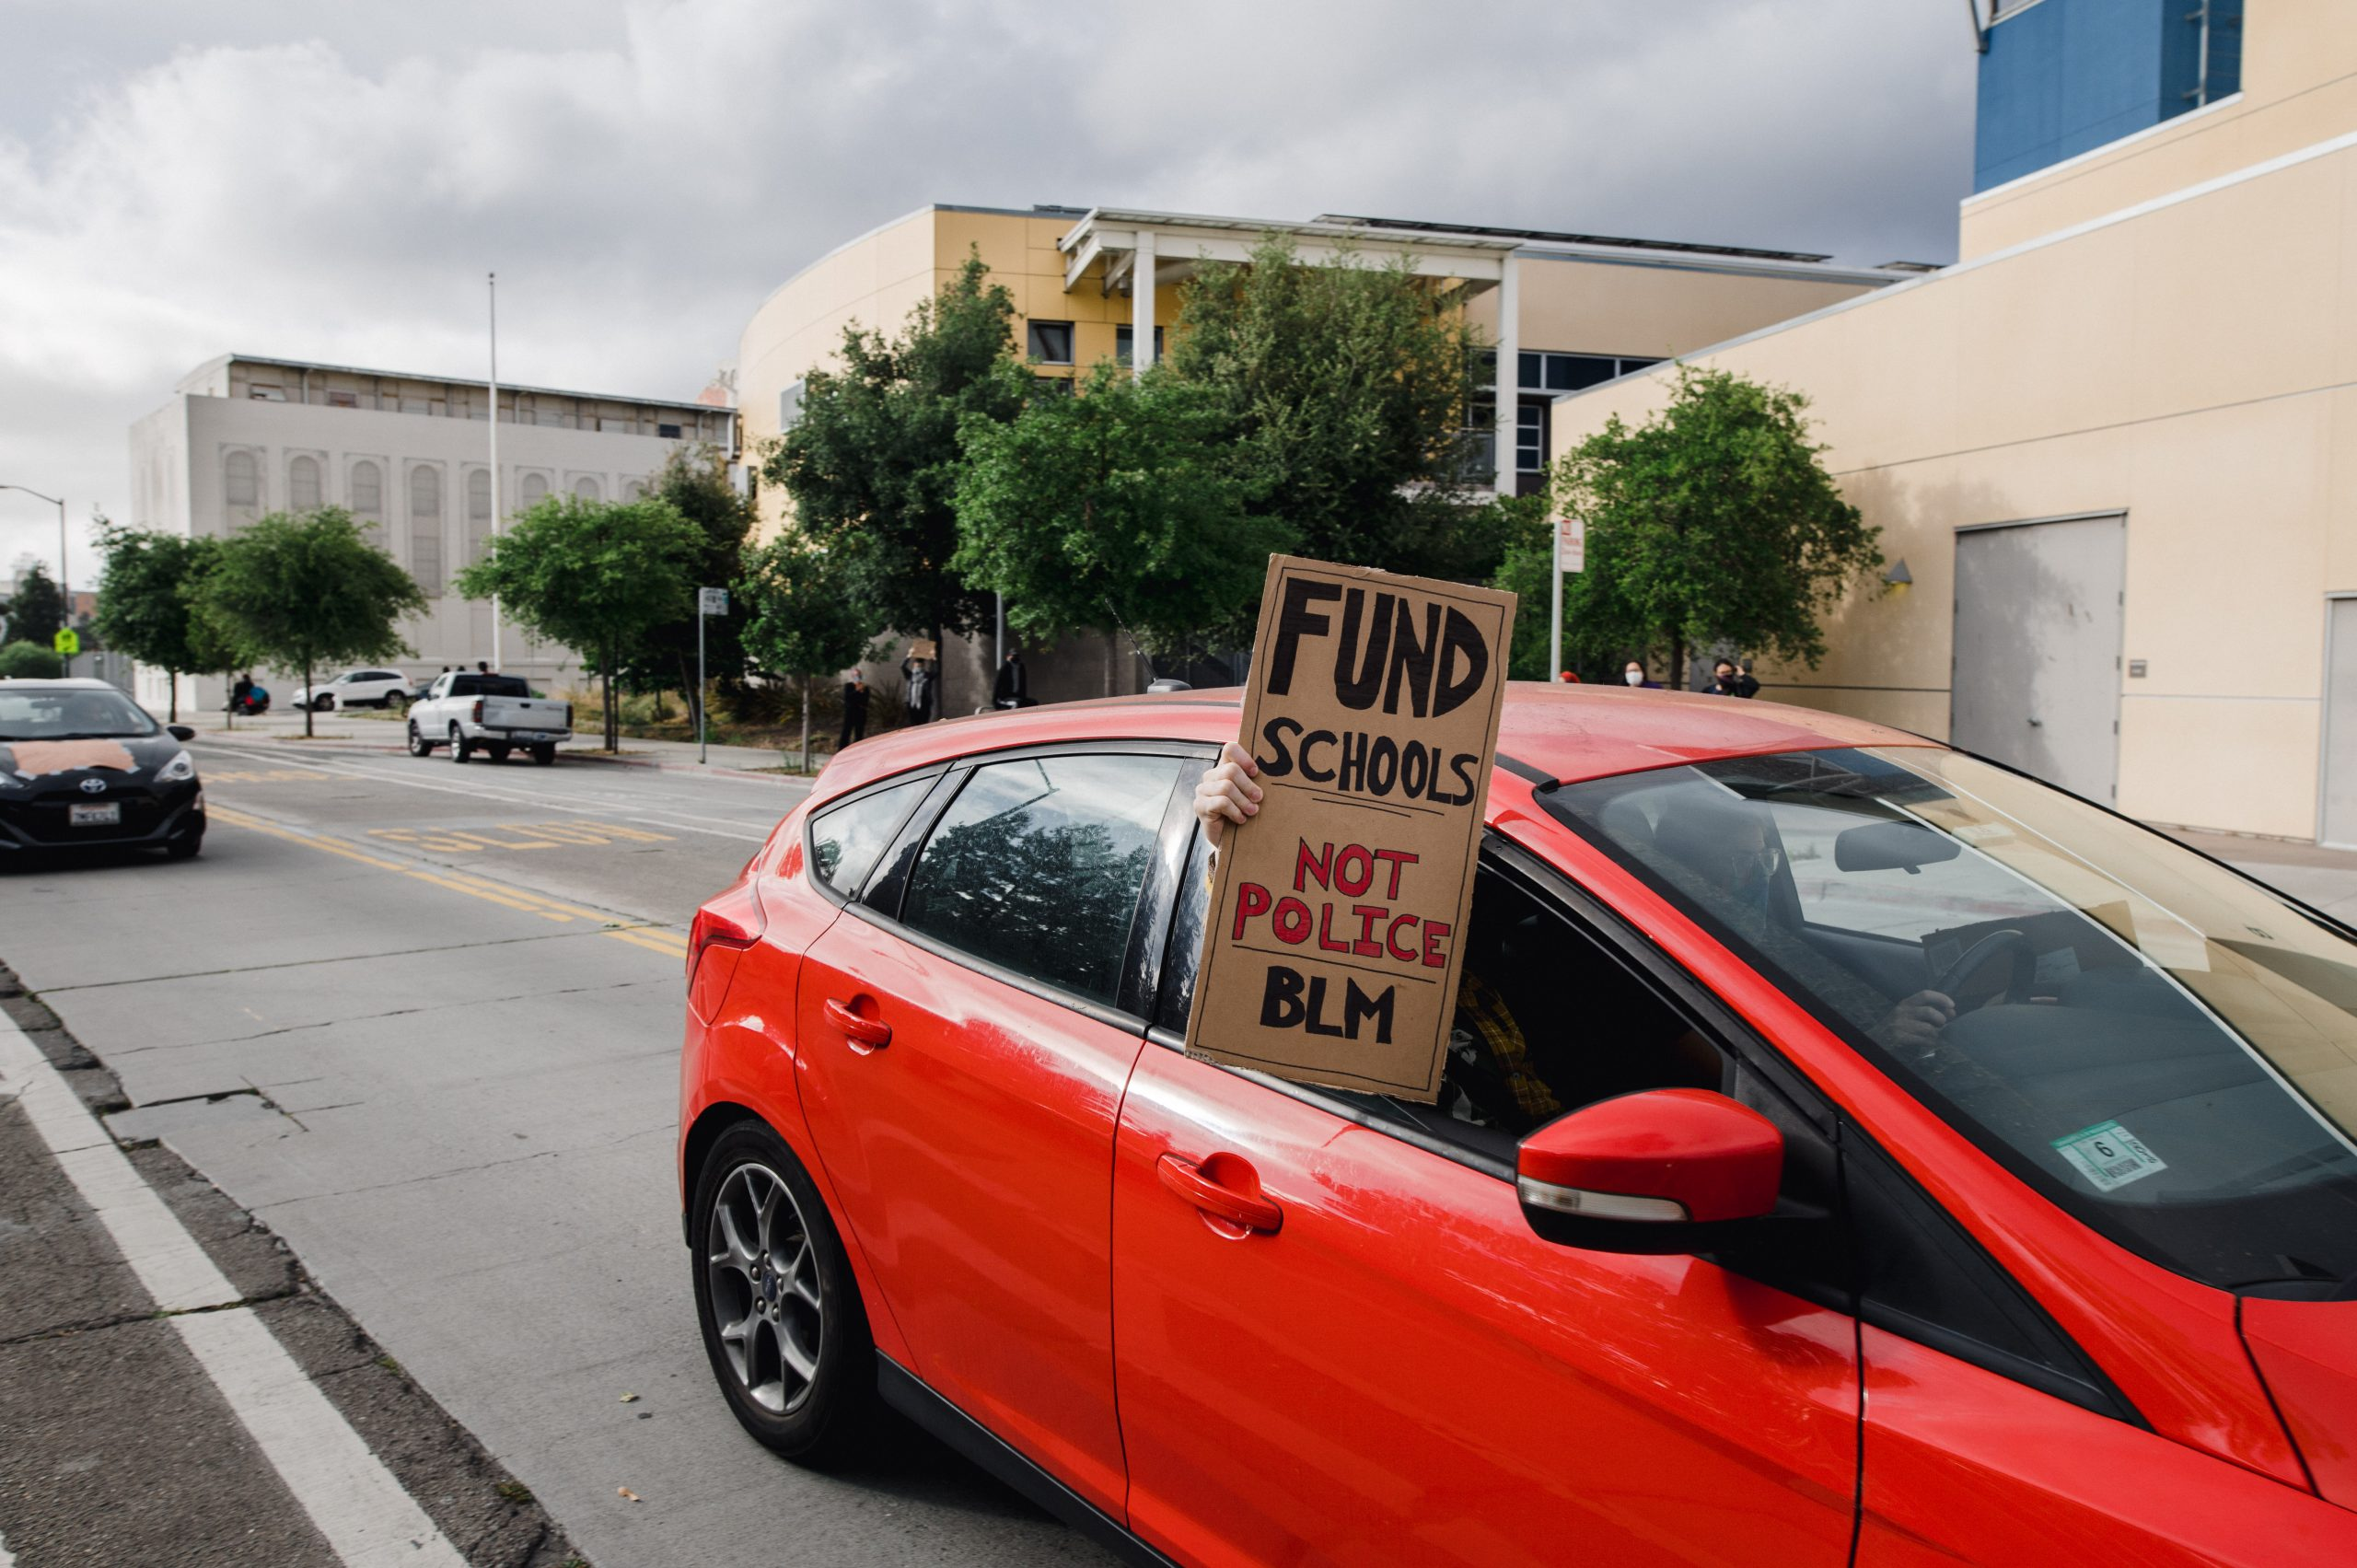 """A red car has the window open. A hand is holding a homemade cardboard sign that says """"Fund Schools Not Police BLM"""""""